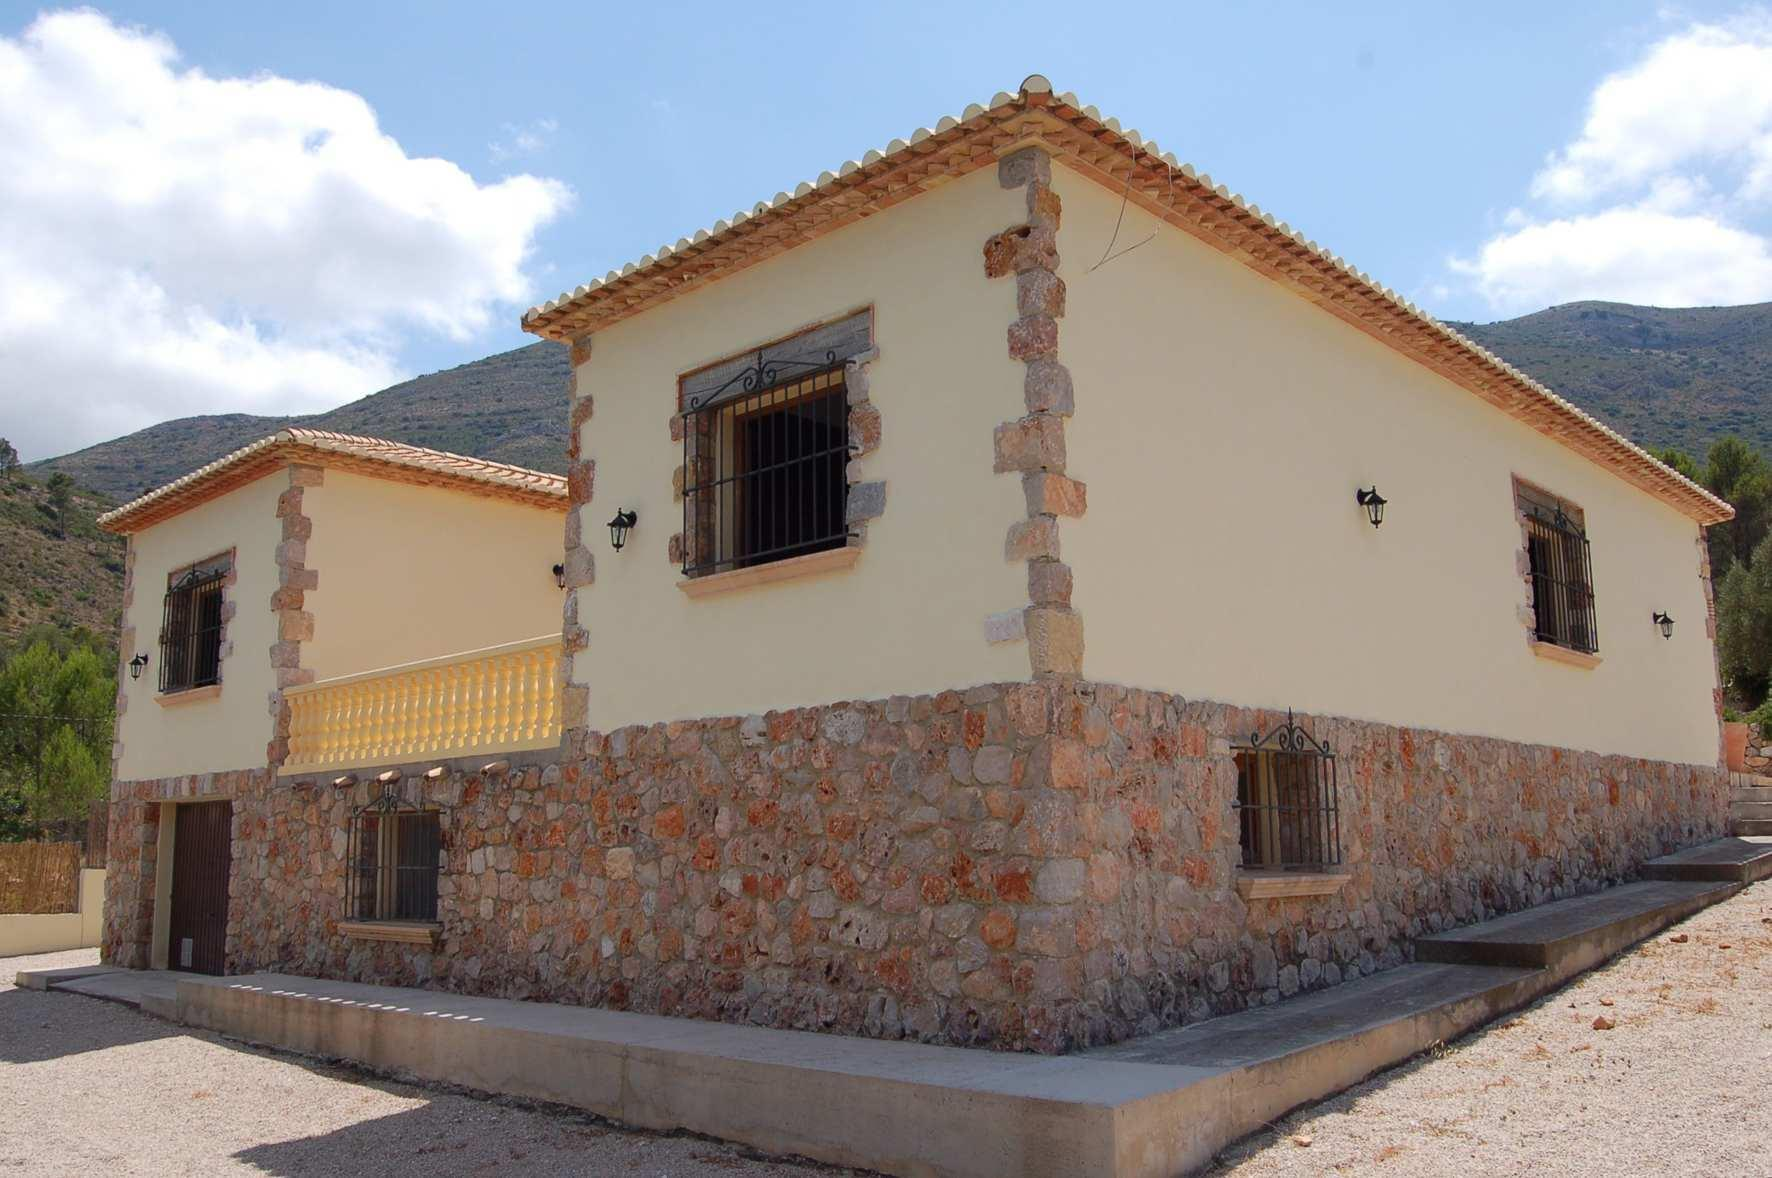 3 Bedroom Finca / Country House in Jalon